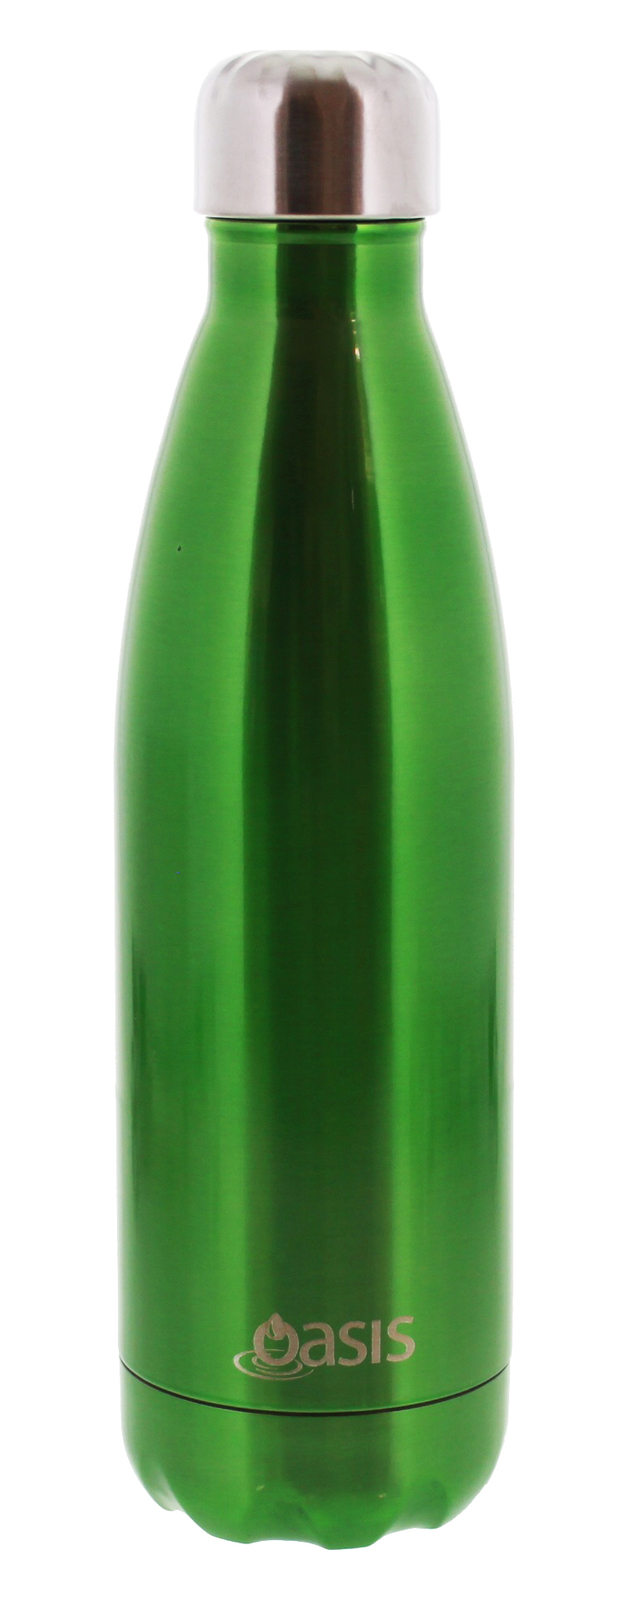 Oasis Insulated Stainless Steel Water Bottle Green